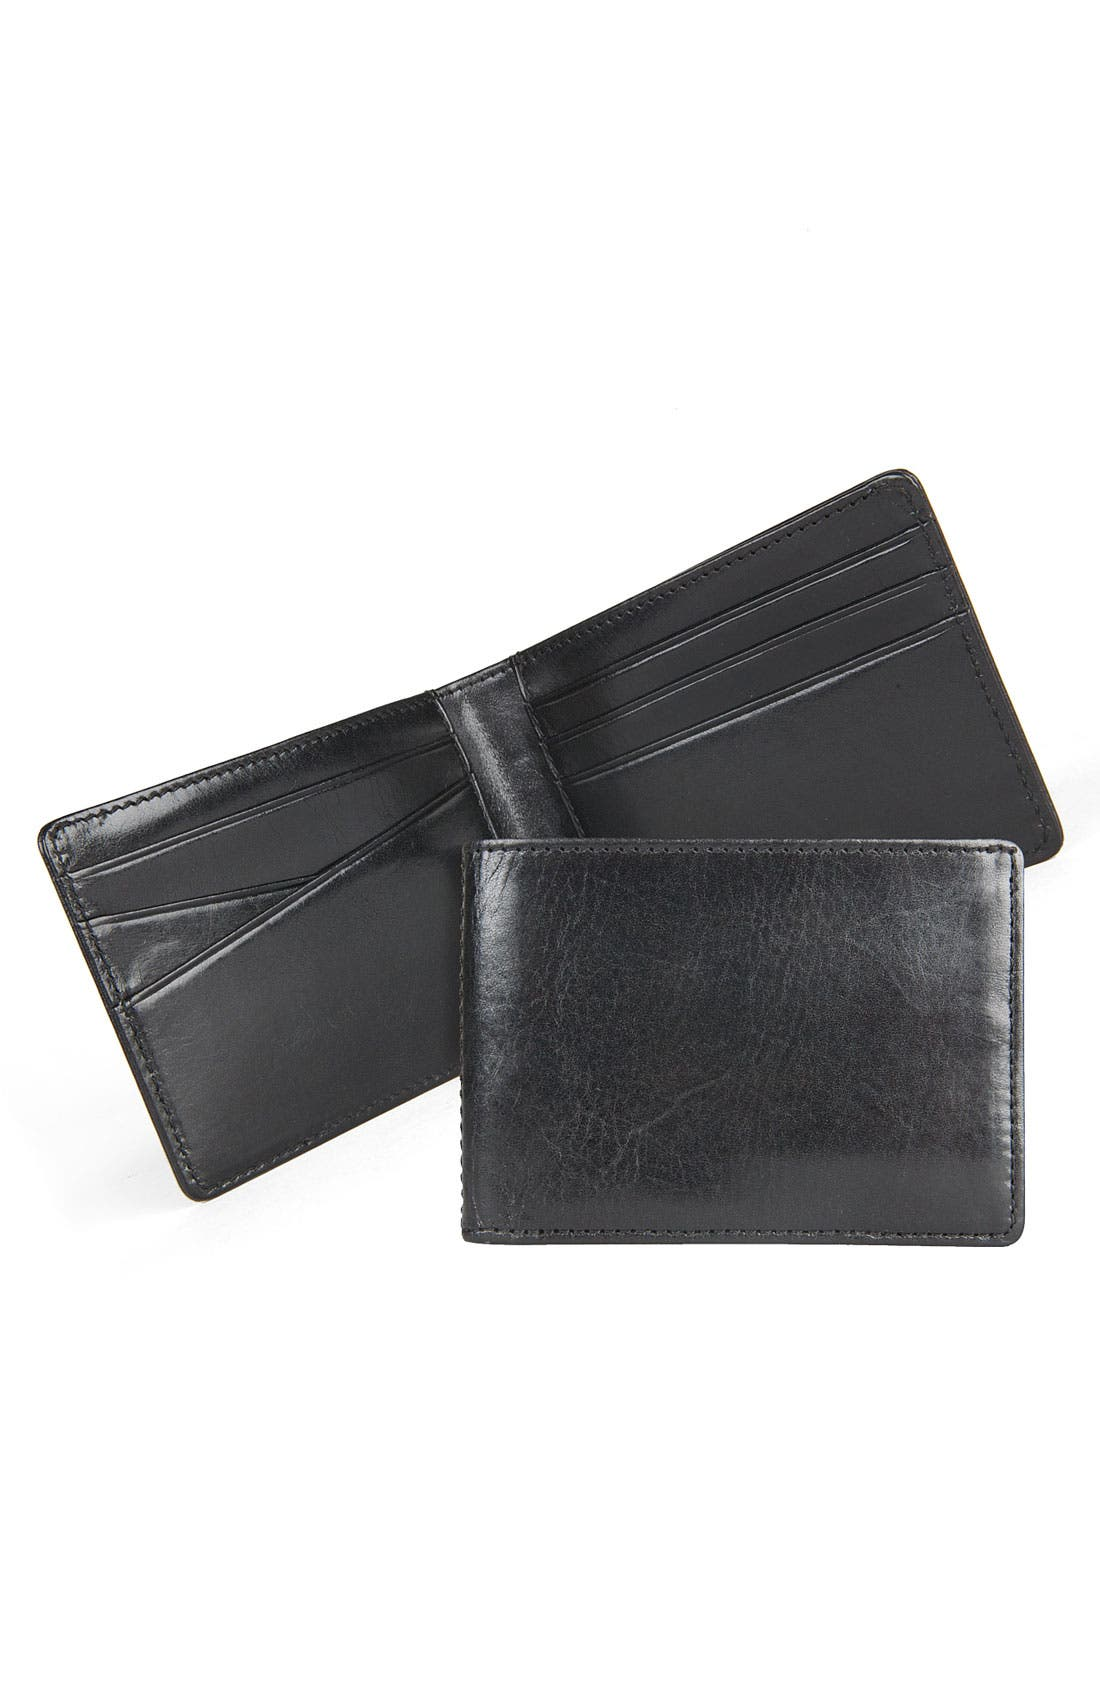 Small Bifold Wallet,                             Alternate thumbnail 5, color,